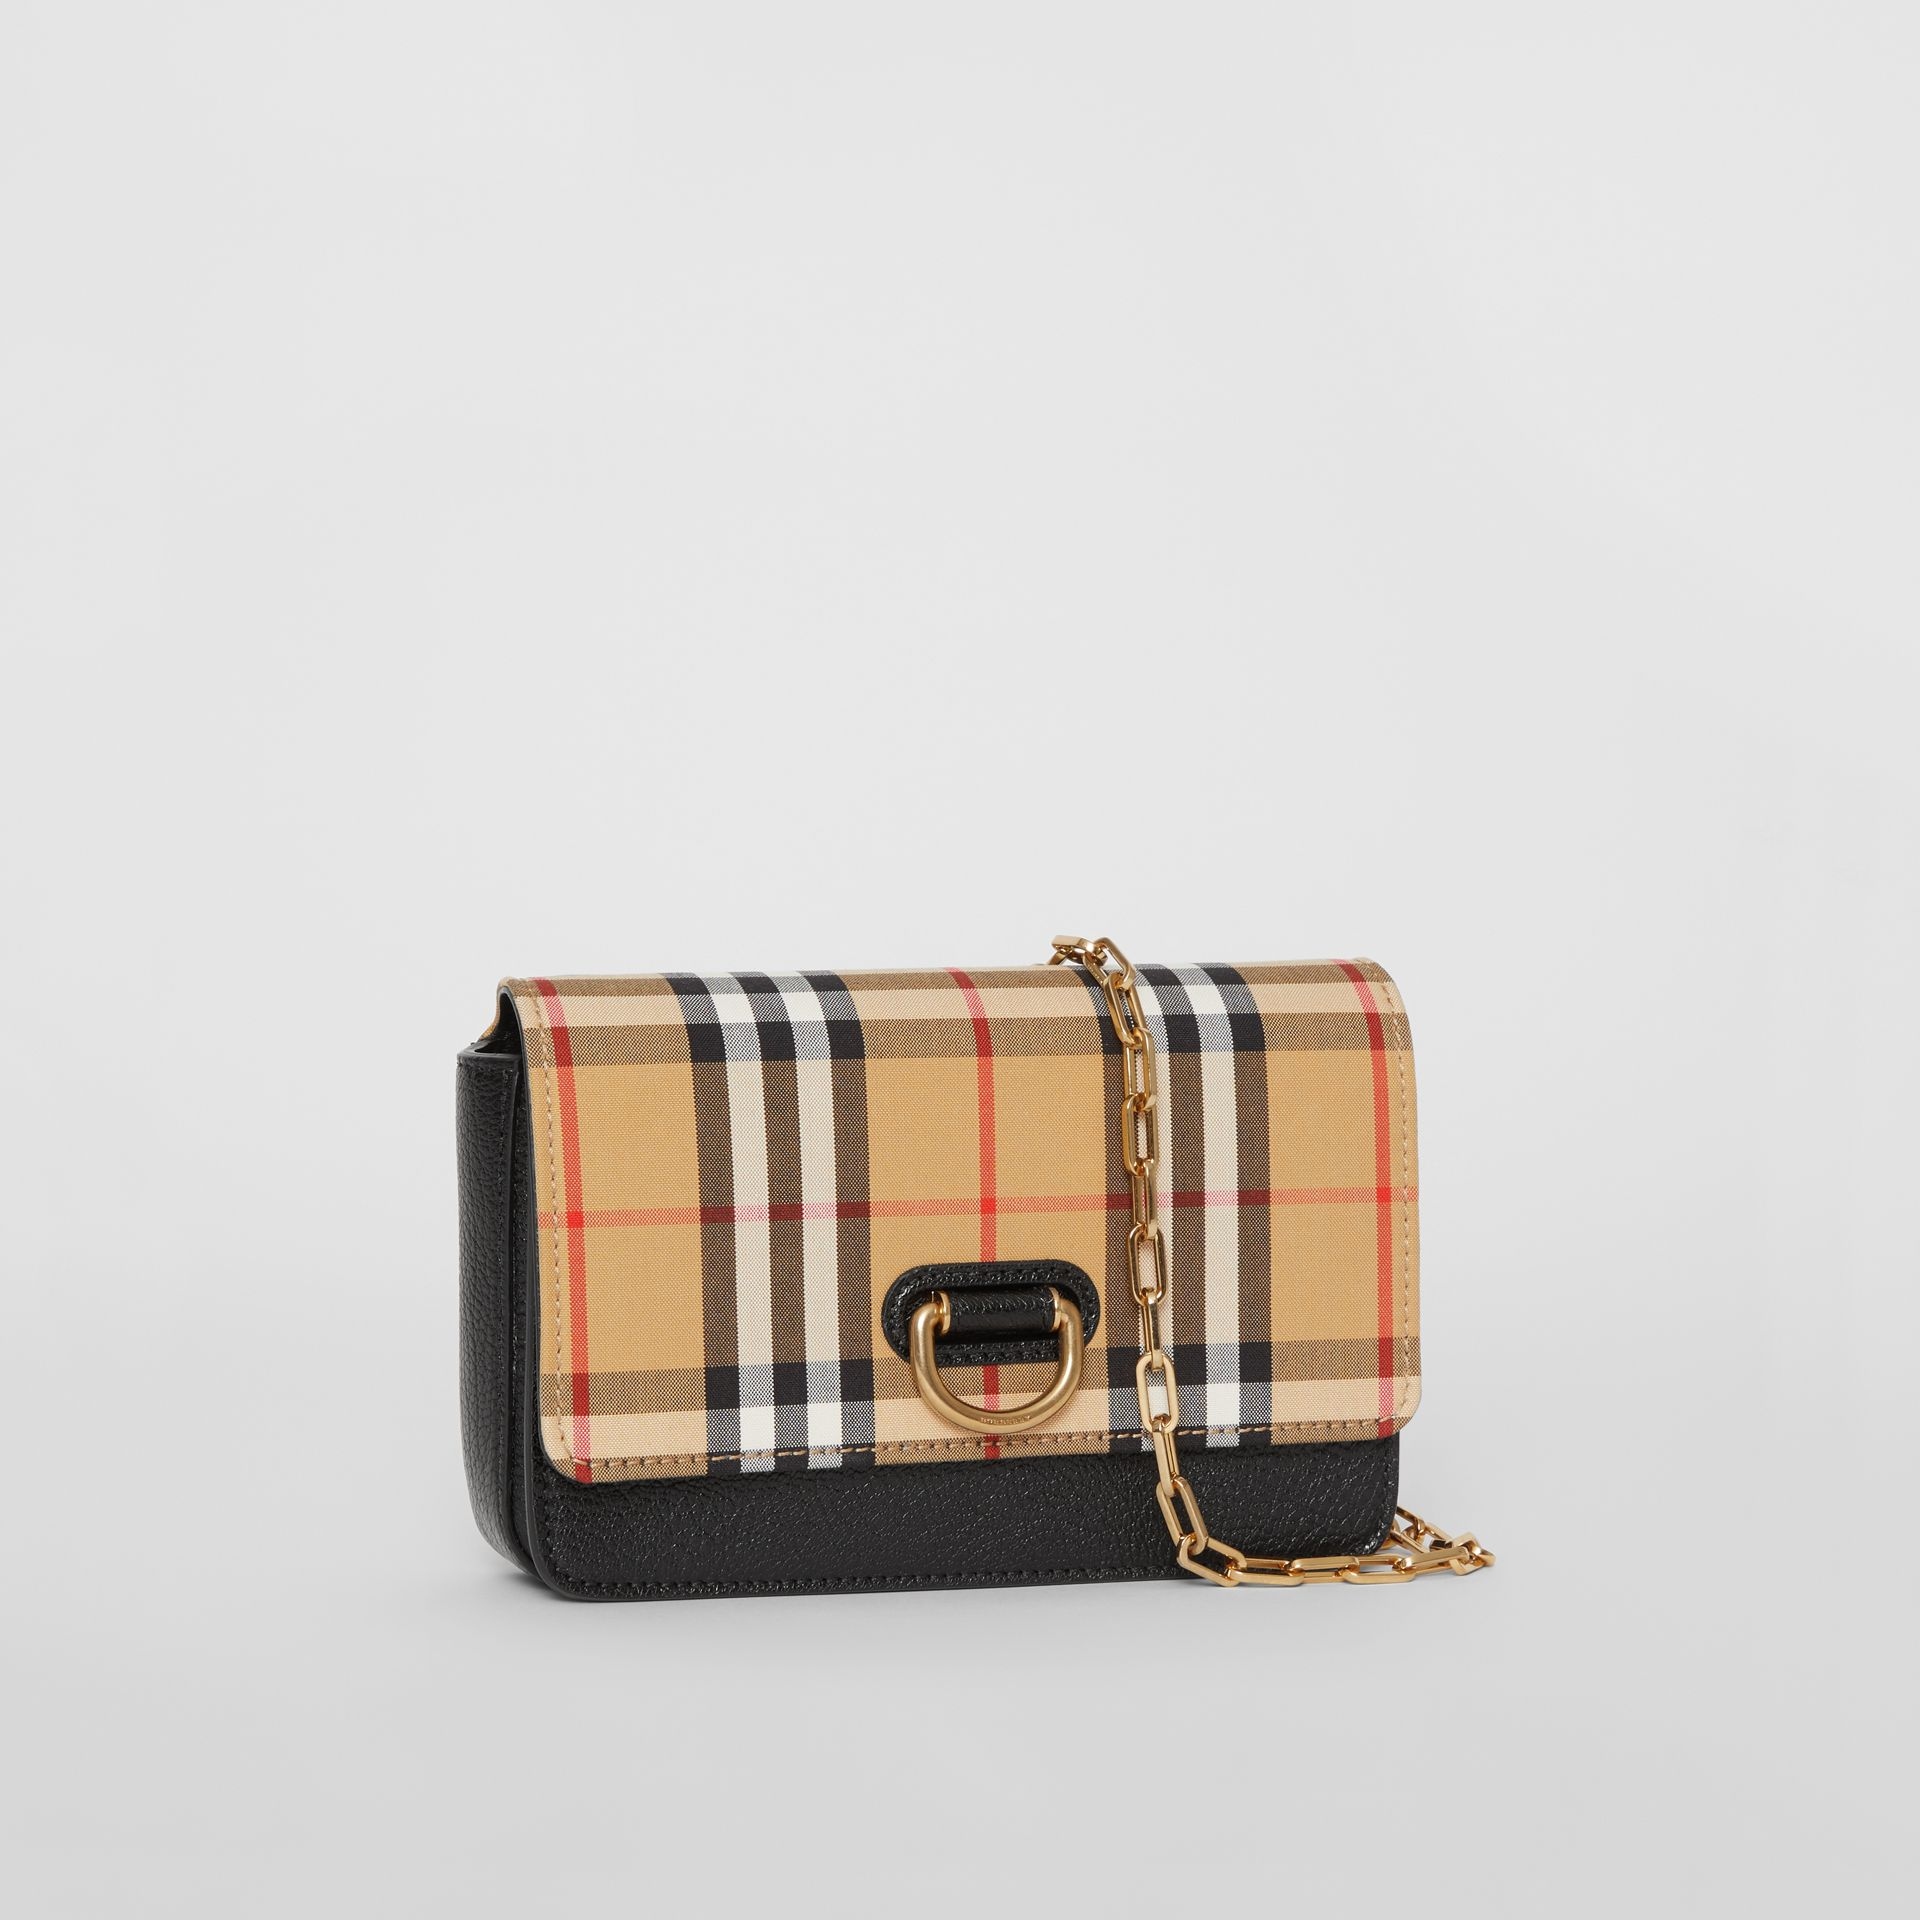 Borsa The D-ring mini in pelle con motivo Vintage check (Nero) - Donna | Burberry - immagine della galleria 6